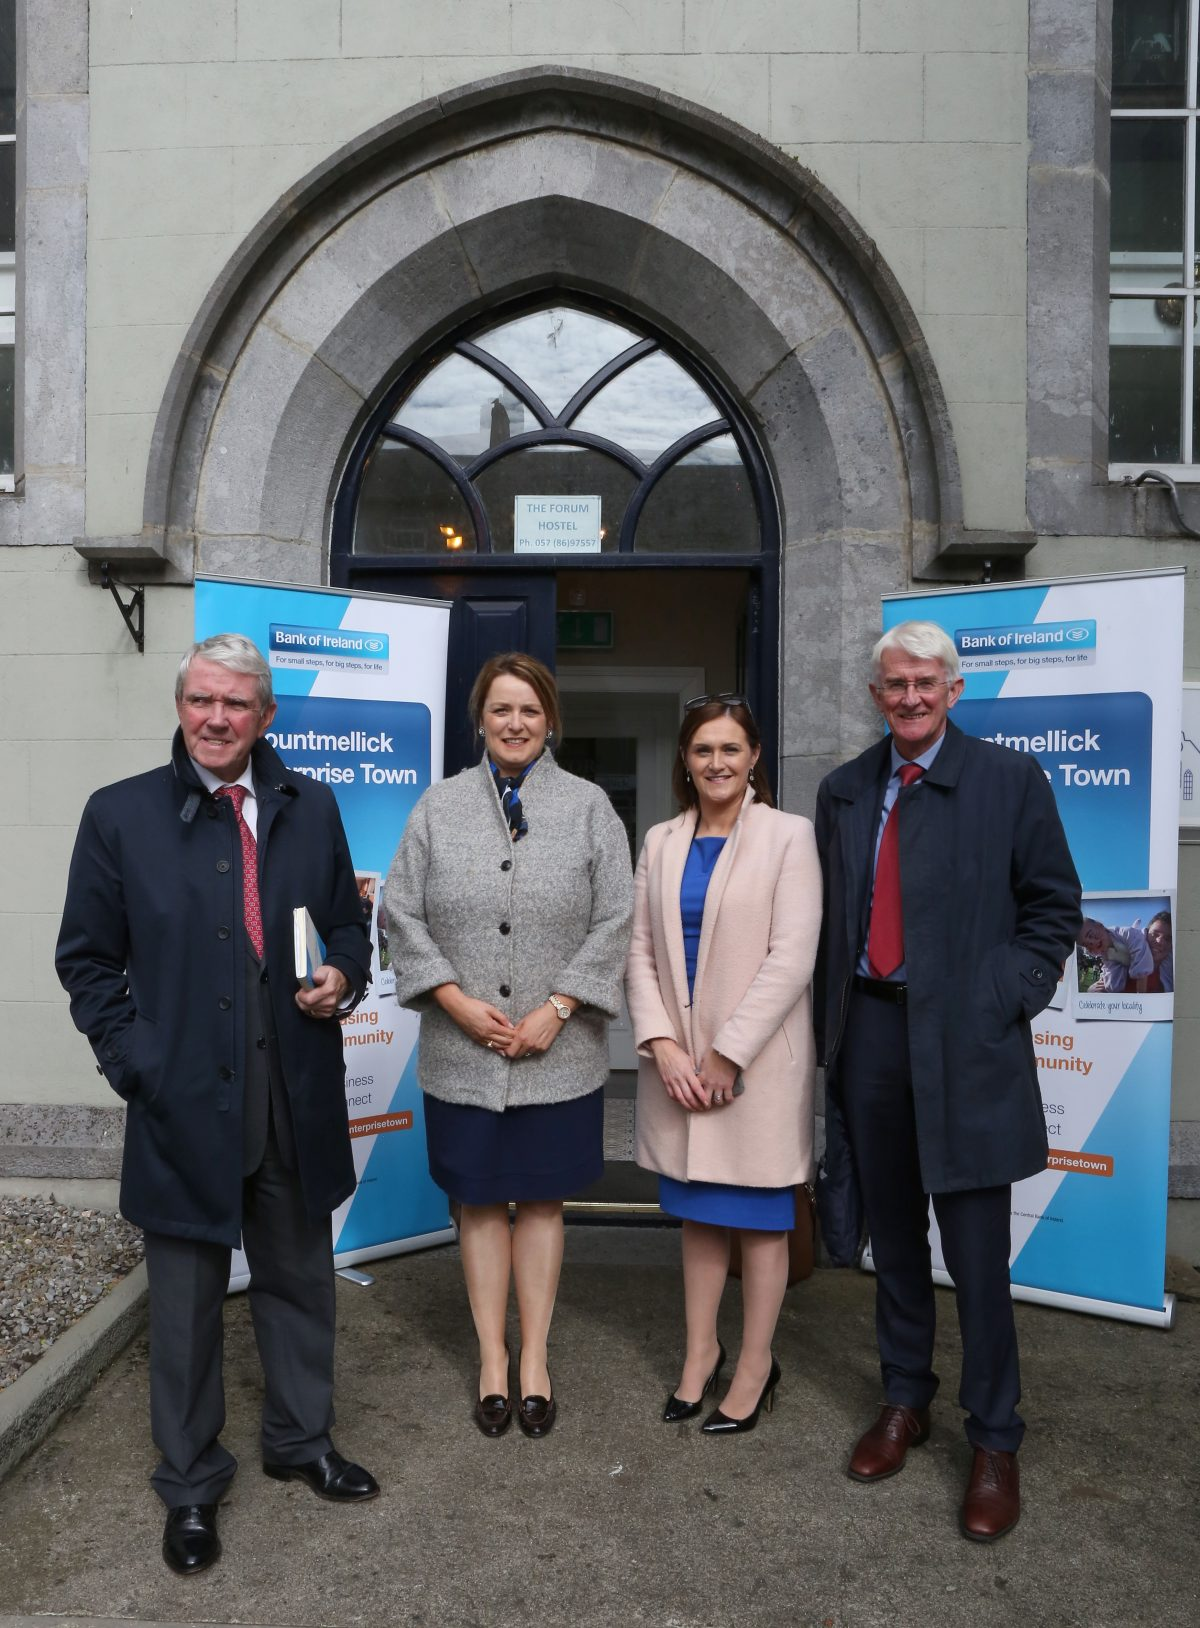 Judges are welcomed by Maria Harris L to R: Eddie Breen (Judge), Maeve Lalor (Judge), Maria Harris (Bank of Ireland), Tom Dowling (Judge).